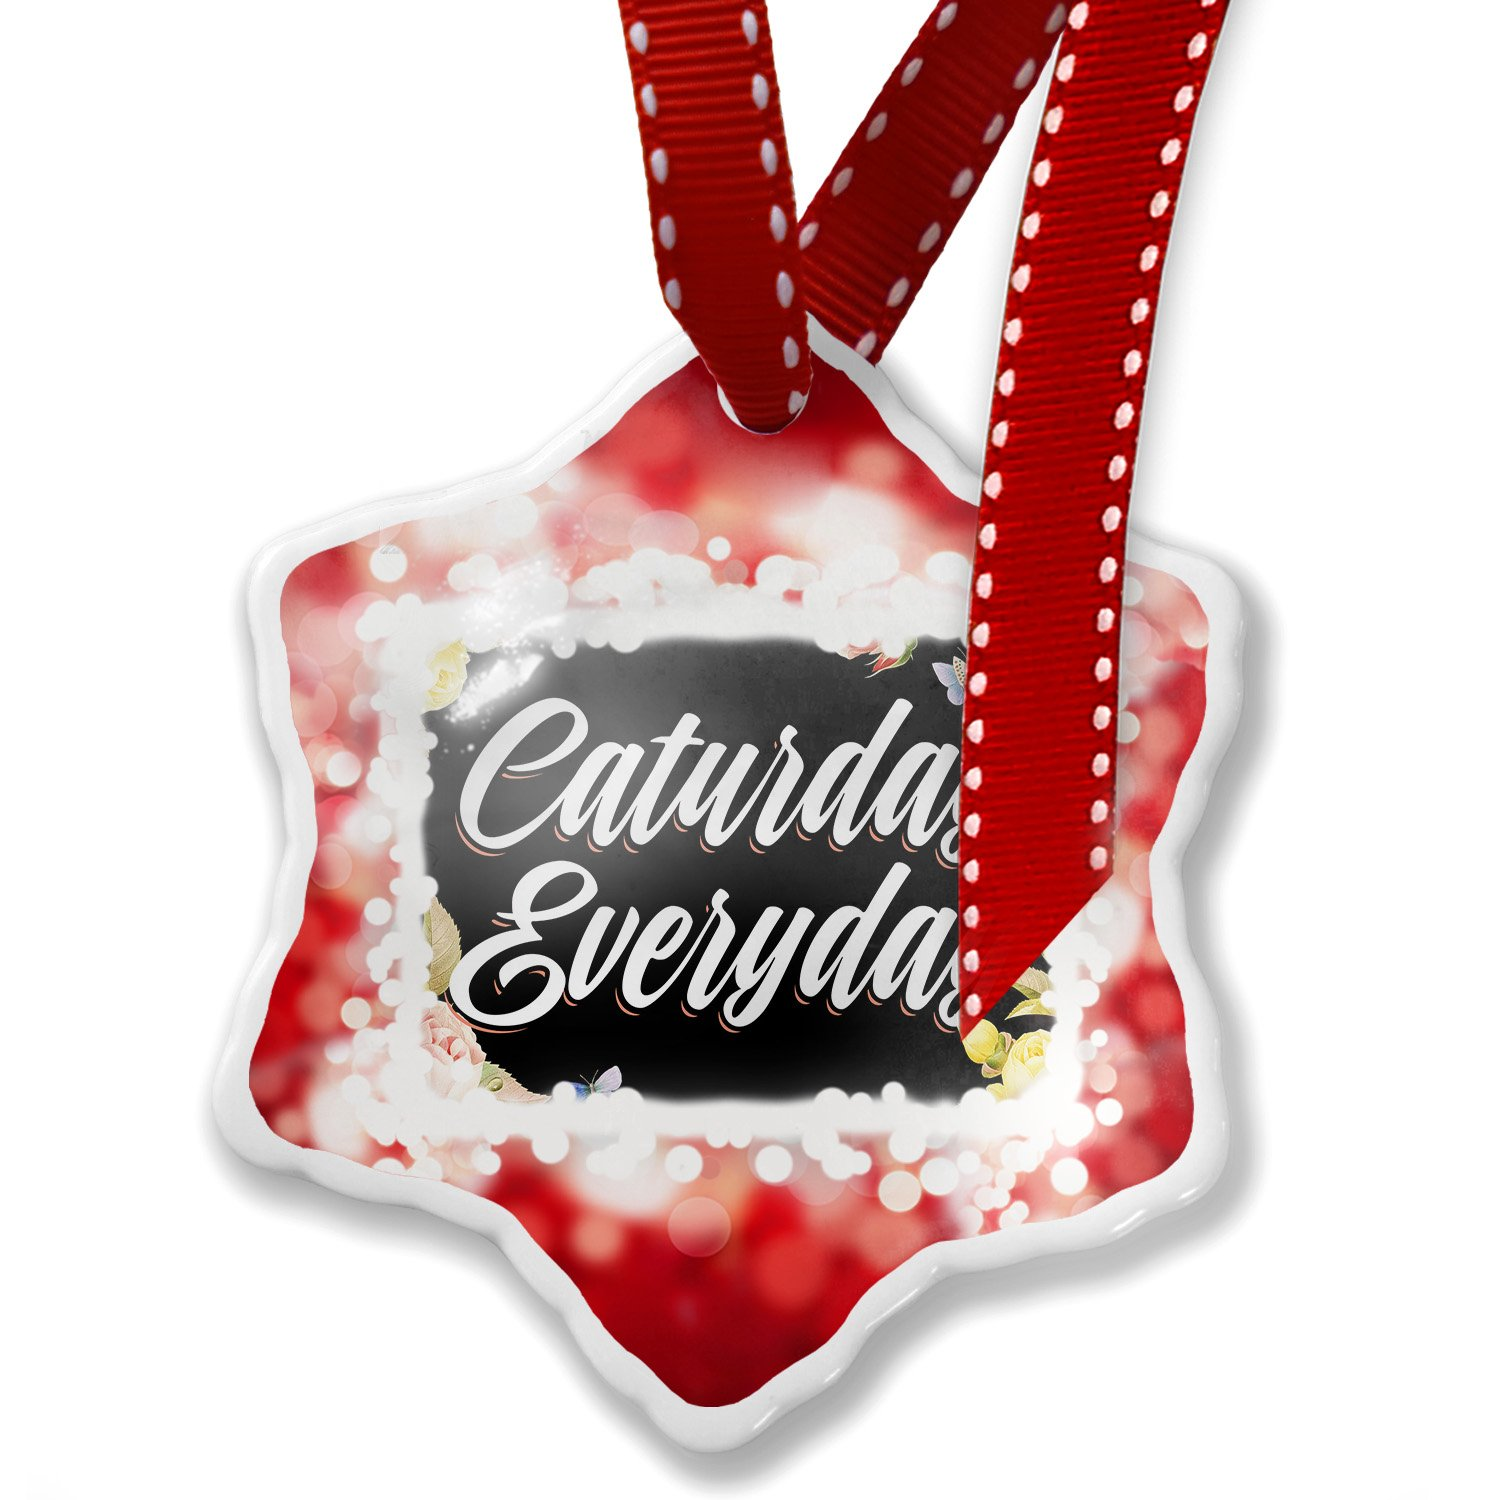 Christmas Ornament Floral Border Caturday Everyday, red - Neonblond